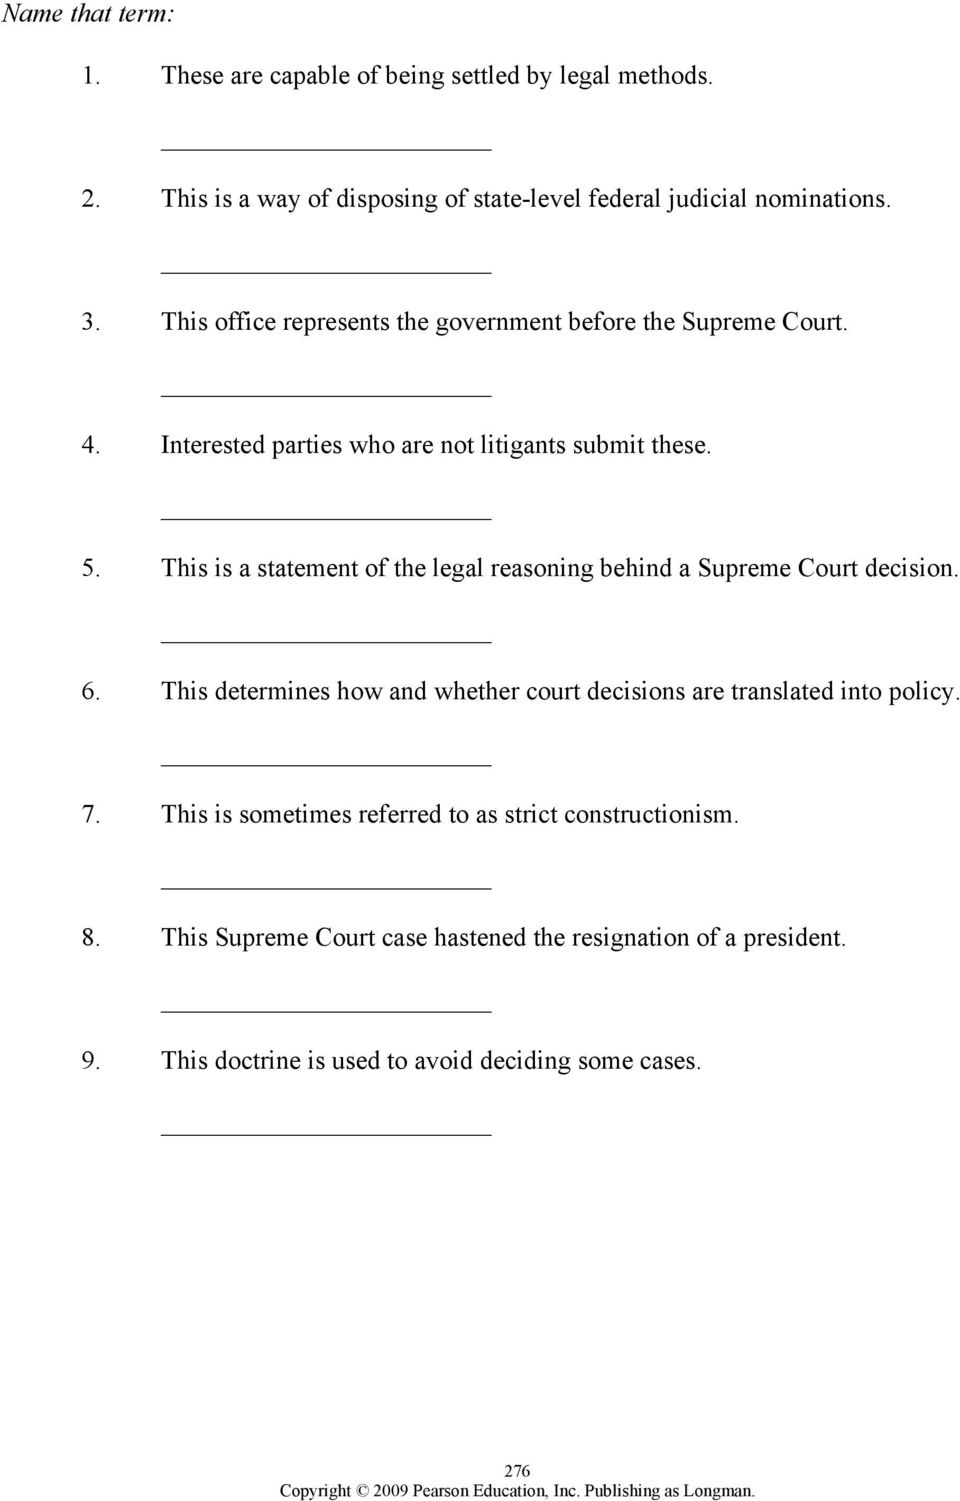 This is a statement of the legal reasoning behind a Supreme Court decision. 6. This determines how and whether court decisions are translated into policy.